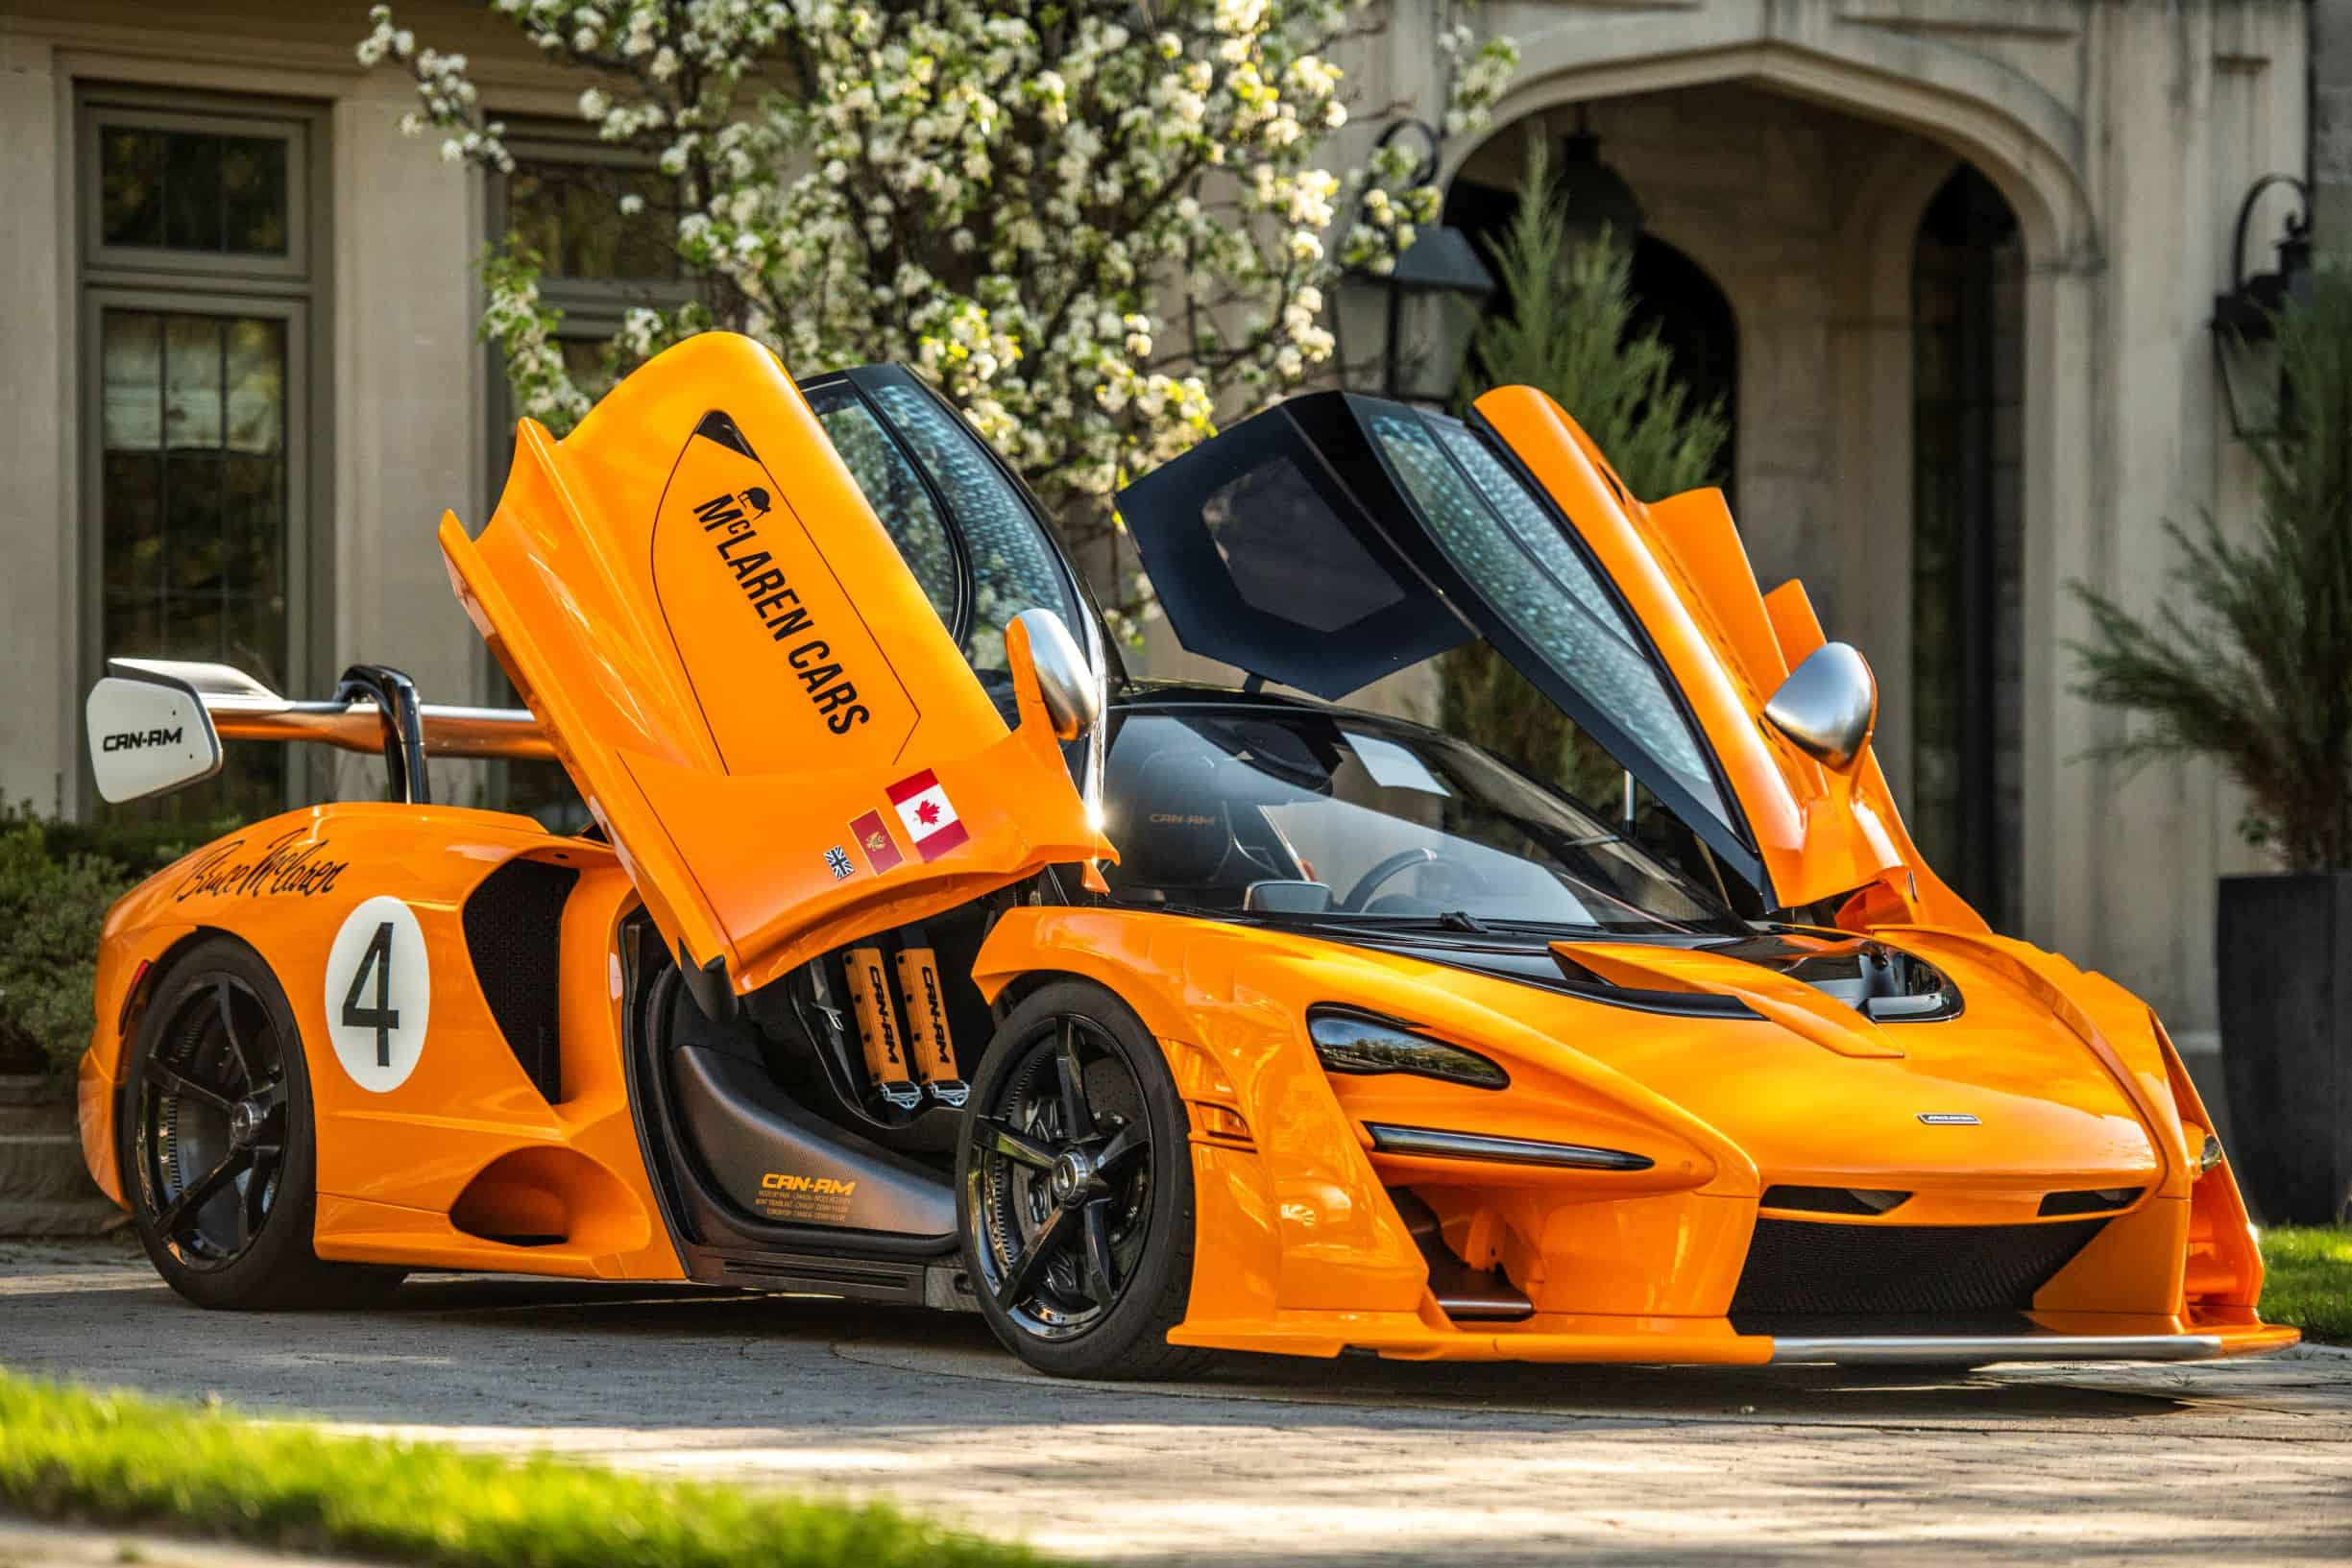 McLaren Senna Can-AM photographed by Scarfone